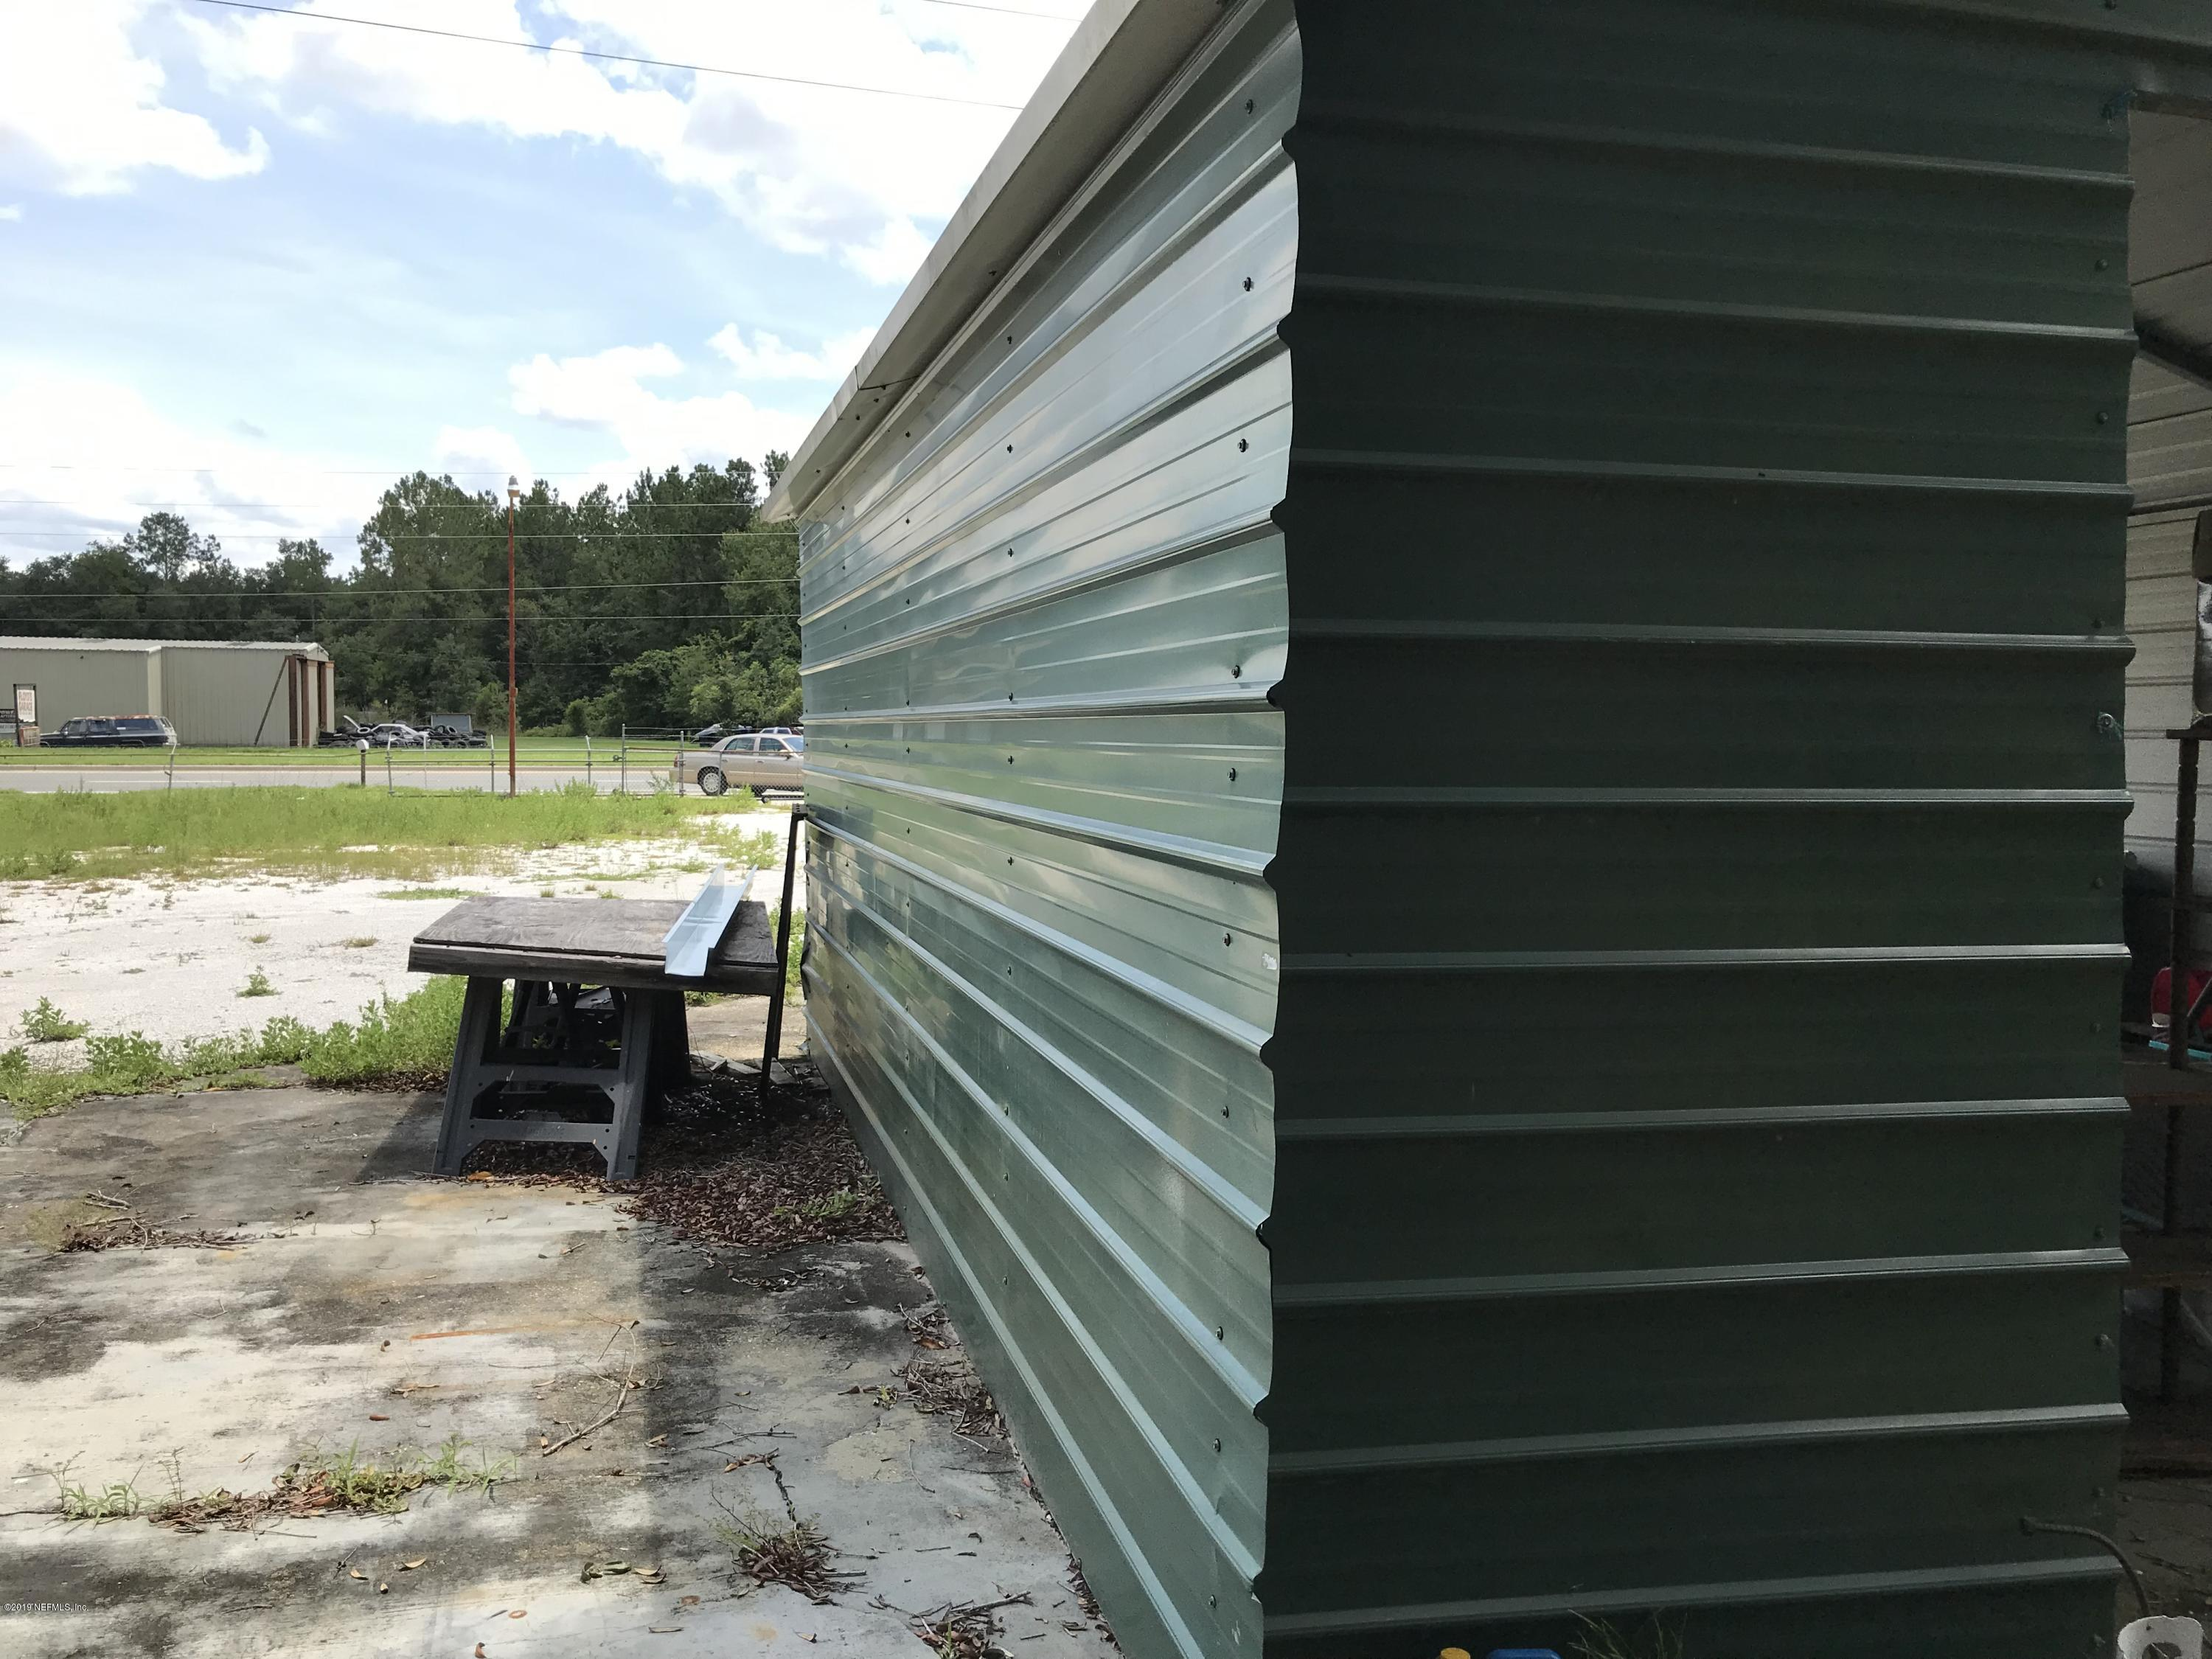 920 STATE ROAD 20, INTERLACHEN, FLORIDA 32148, ,Commercial,For sale,STATE ROAD 20,1004892